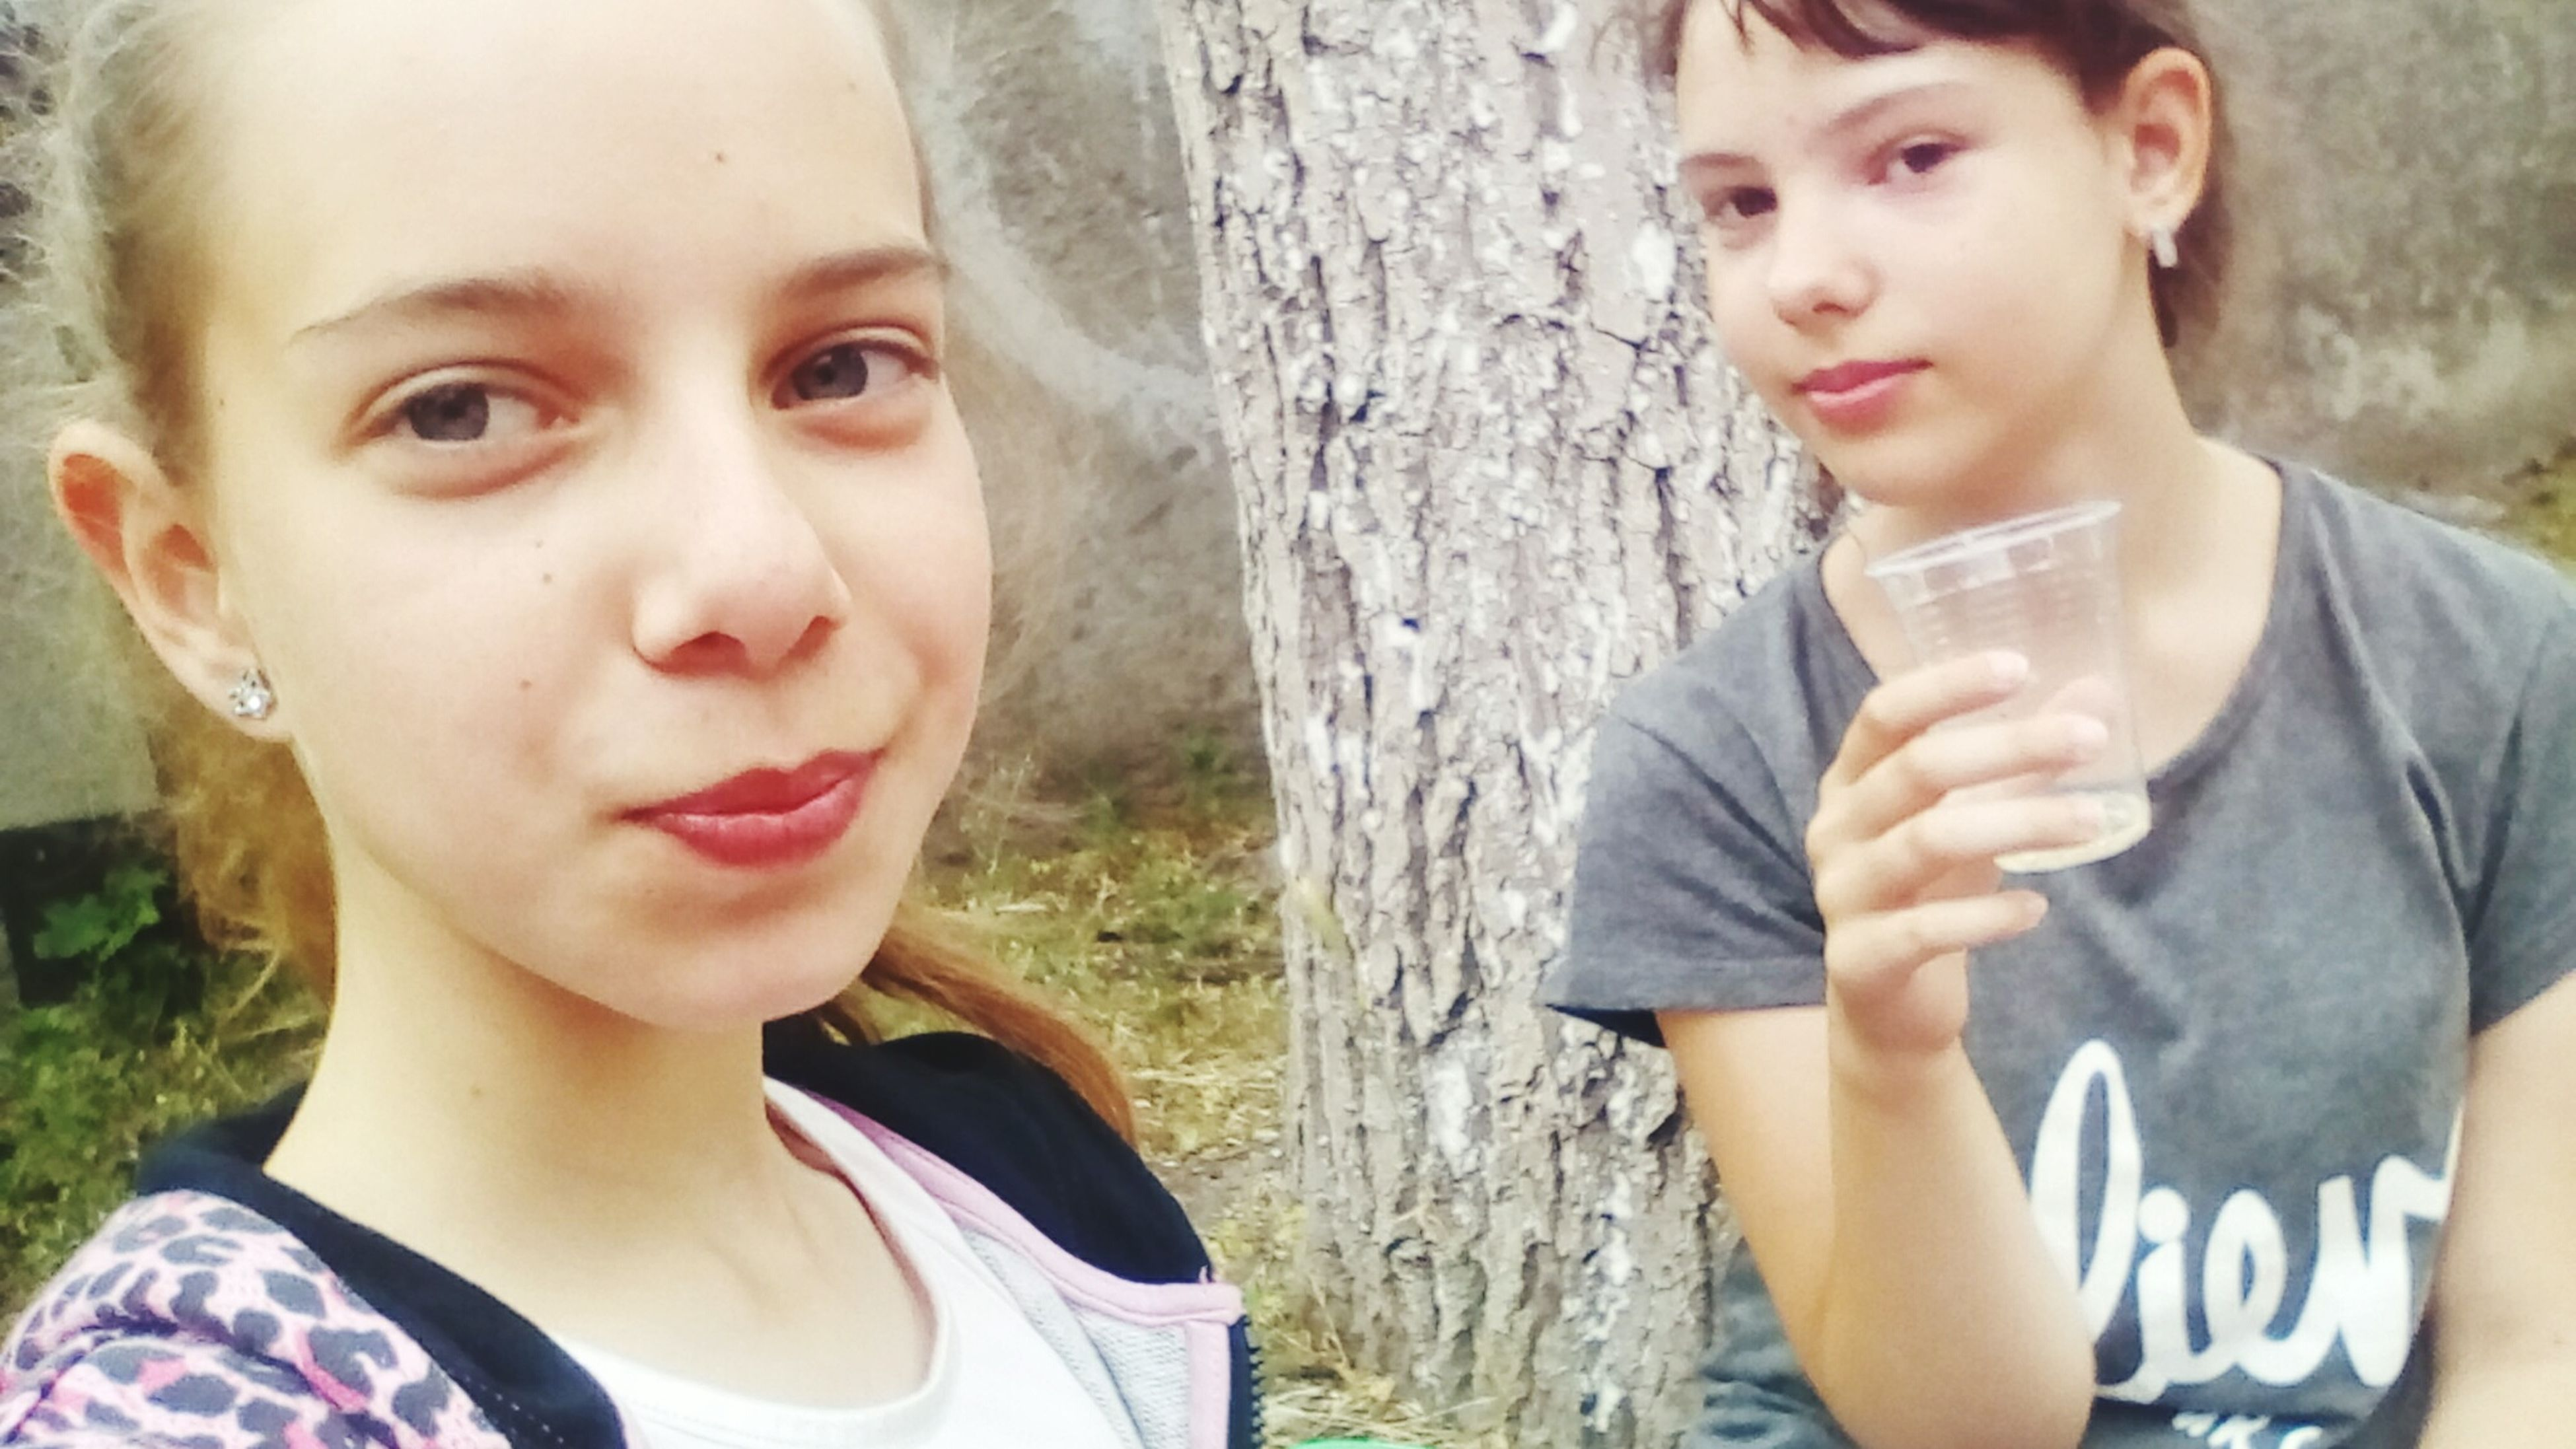 two people, childhood, looking at camera, real people, boys, leisure activity, portrait, casual clothing, elementary age, day, outdoors, lifestyles, togetherness, headshot, front view, focus on foreground, girls, standing, close-up, tree, bonding, young women, friendship, young adult, people